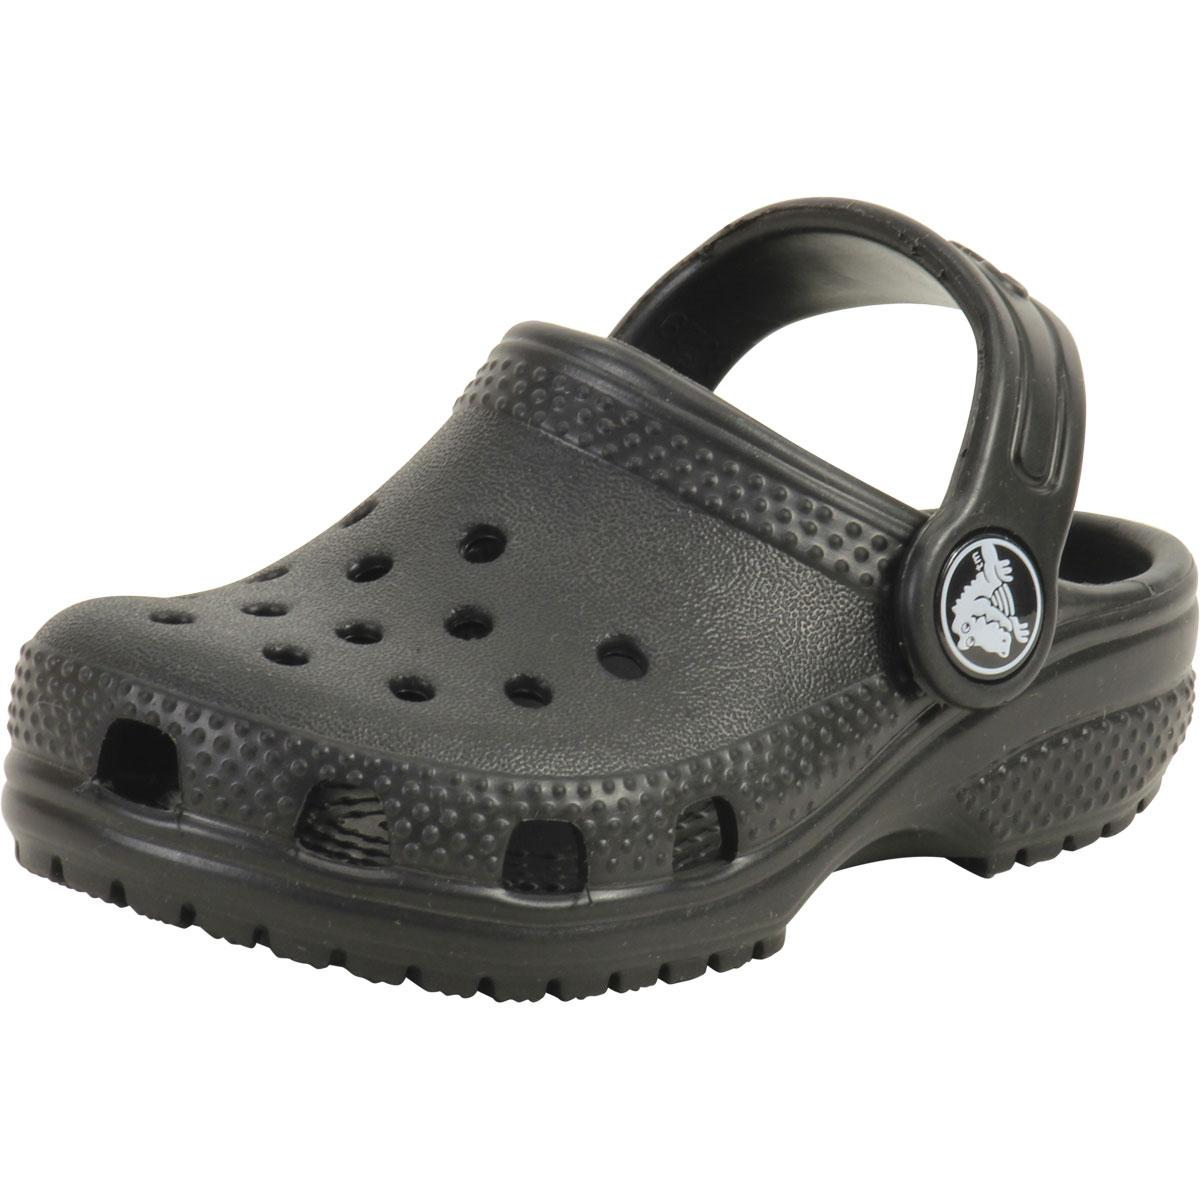 Crocs Toddler/Little Boy's Original Classic Clogs Sandals Shoes